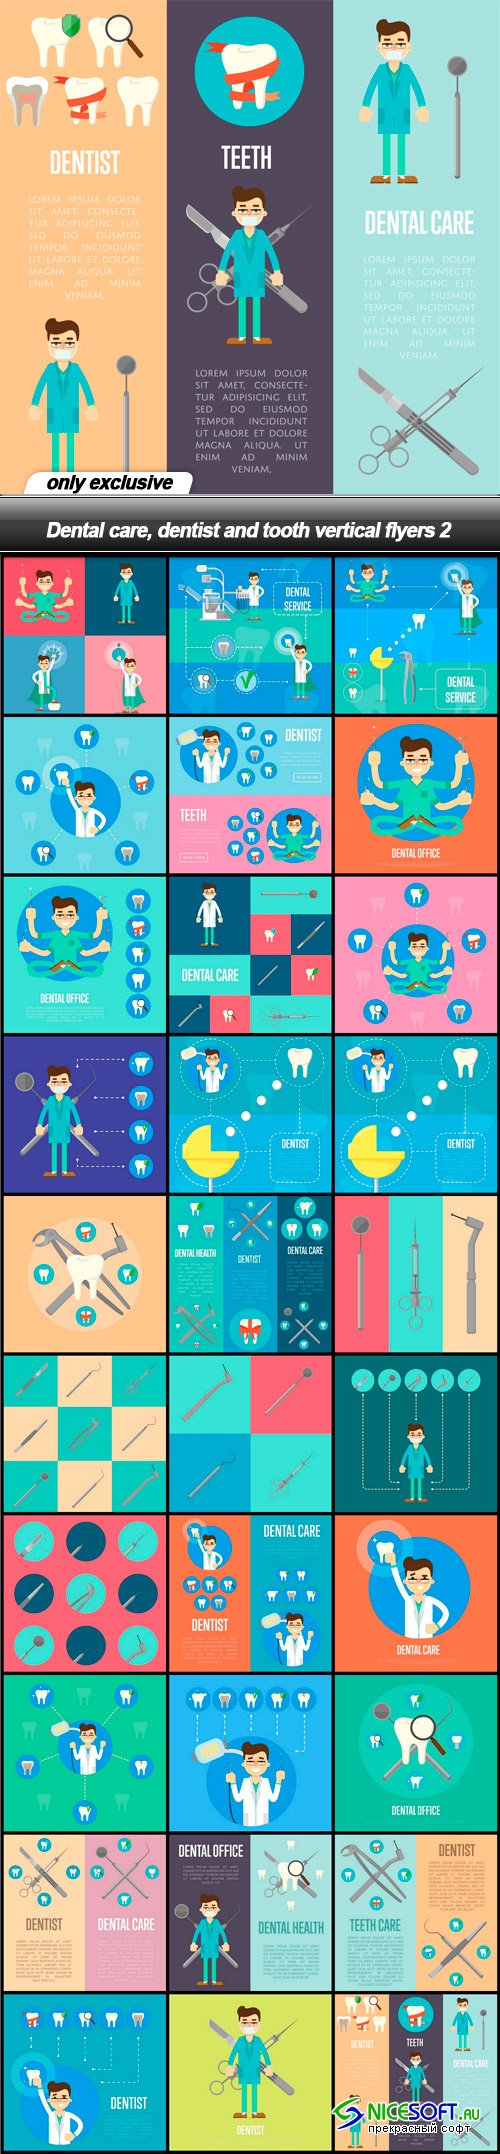 Dental care, dentist and tooth vertical flyers 2